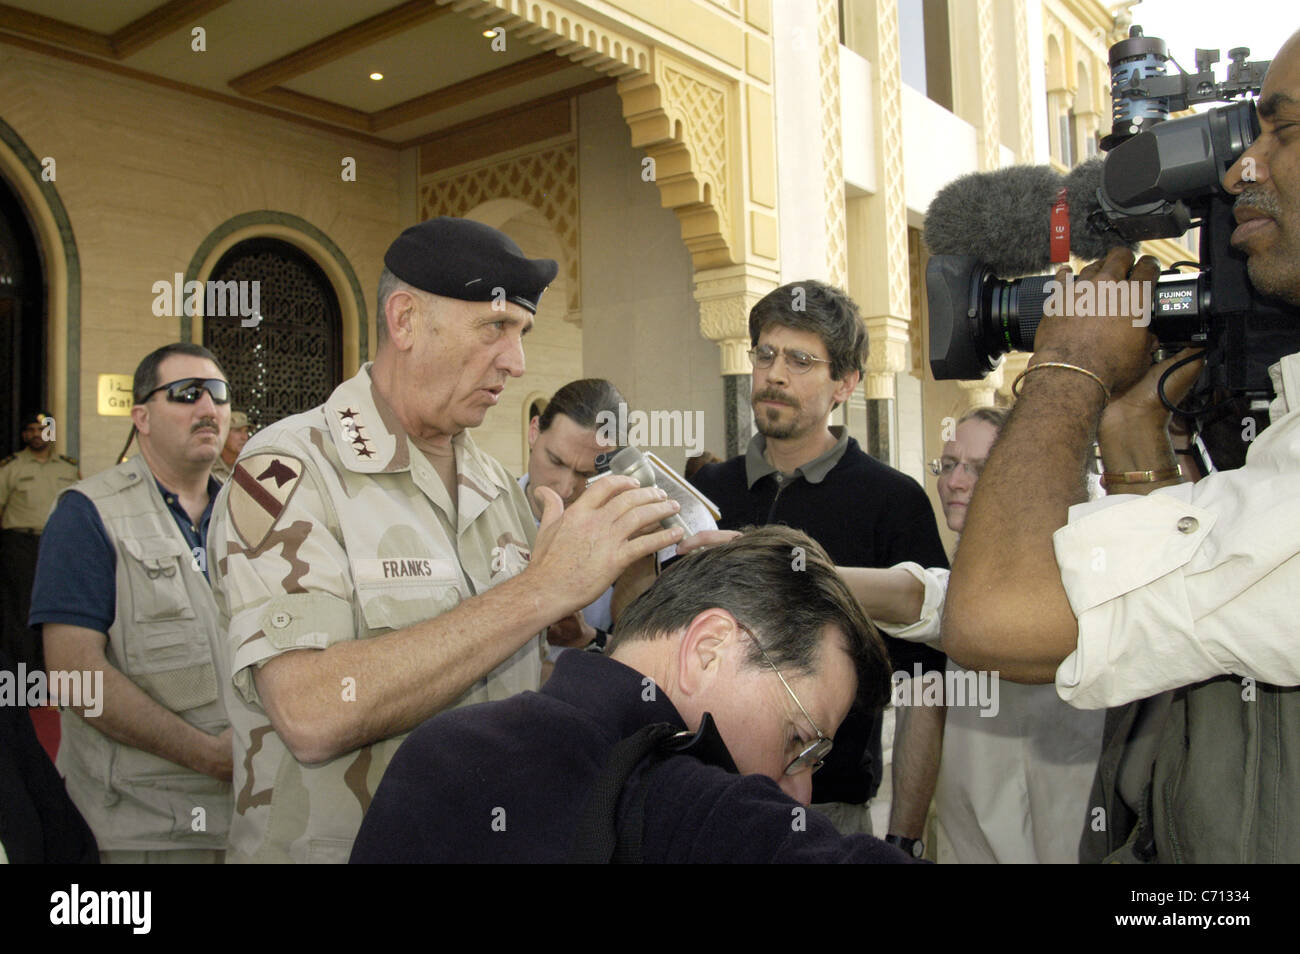 Army Gen. Tommy Franks, commander of U.S. Central Command, speaks with reporters outside a hotel in Abu Dhabi, United - Stock Image